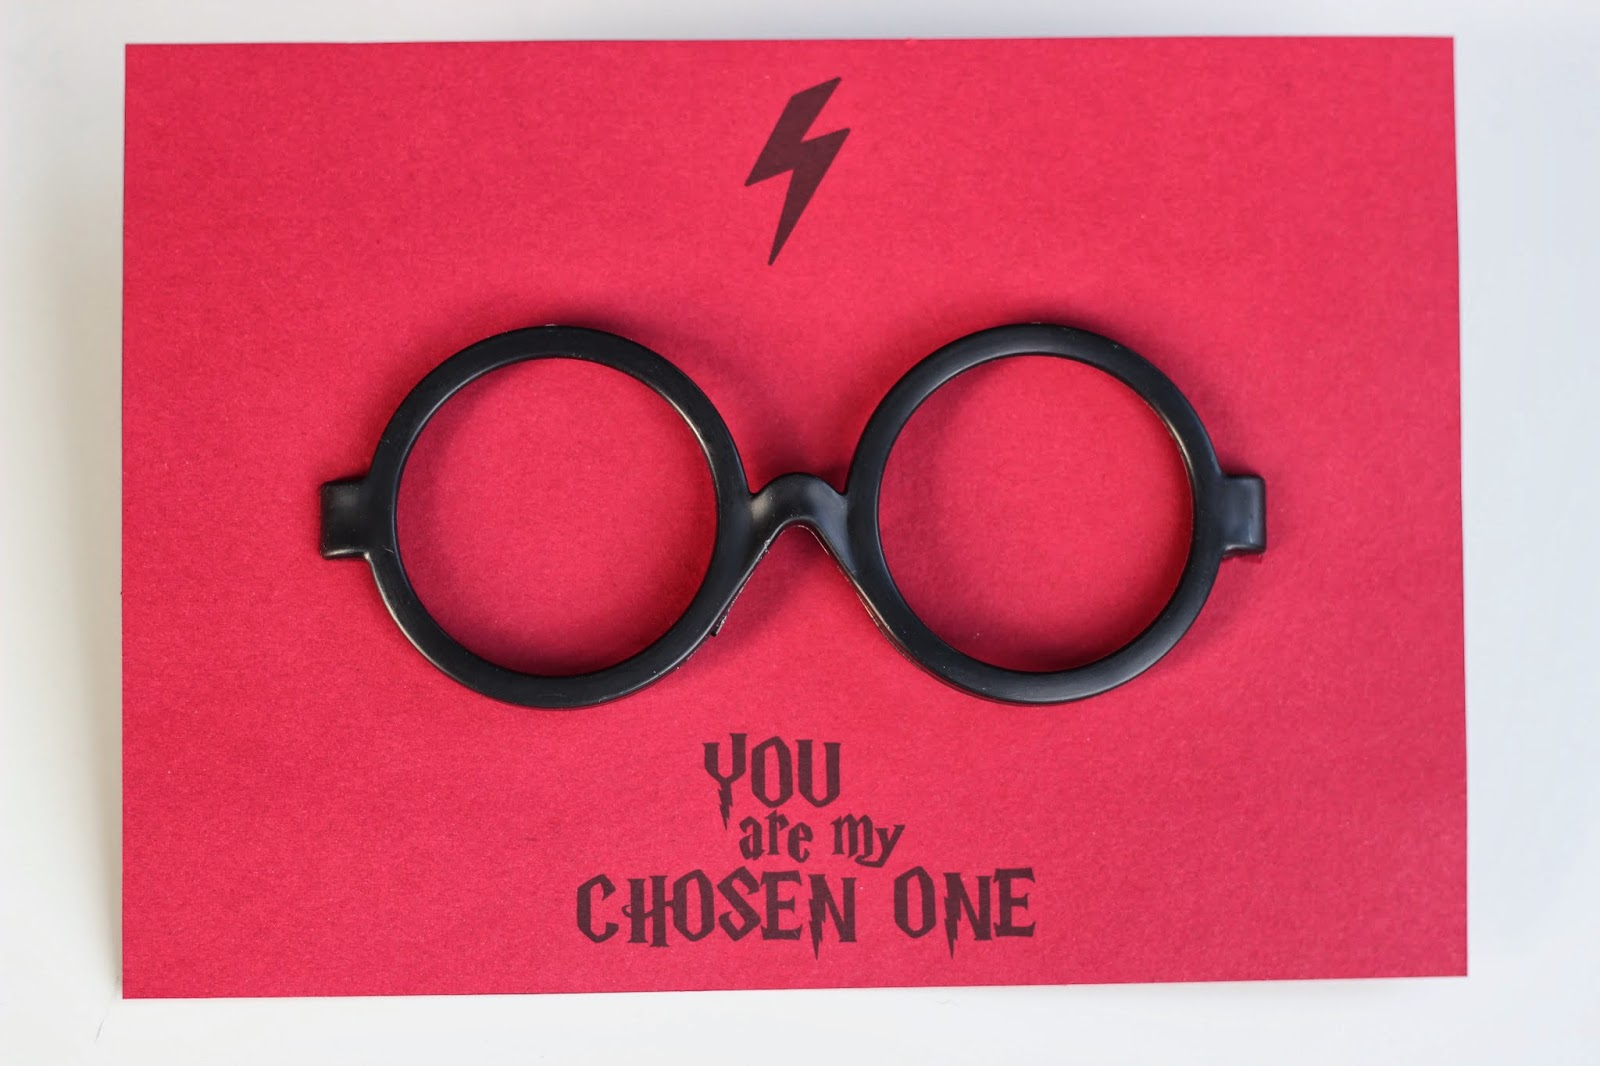 photograph about Harry Potter Glasses Printable named HARRY POTTER VALENTINES CARD (Free of charge PRINTABLE)